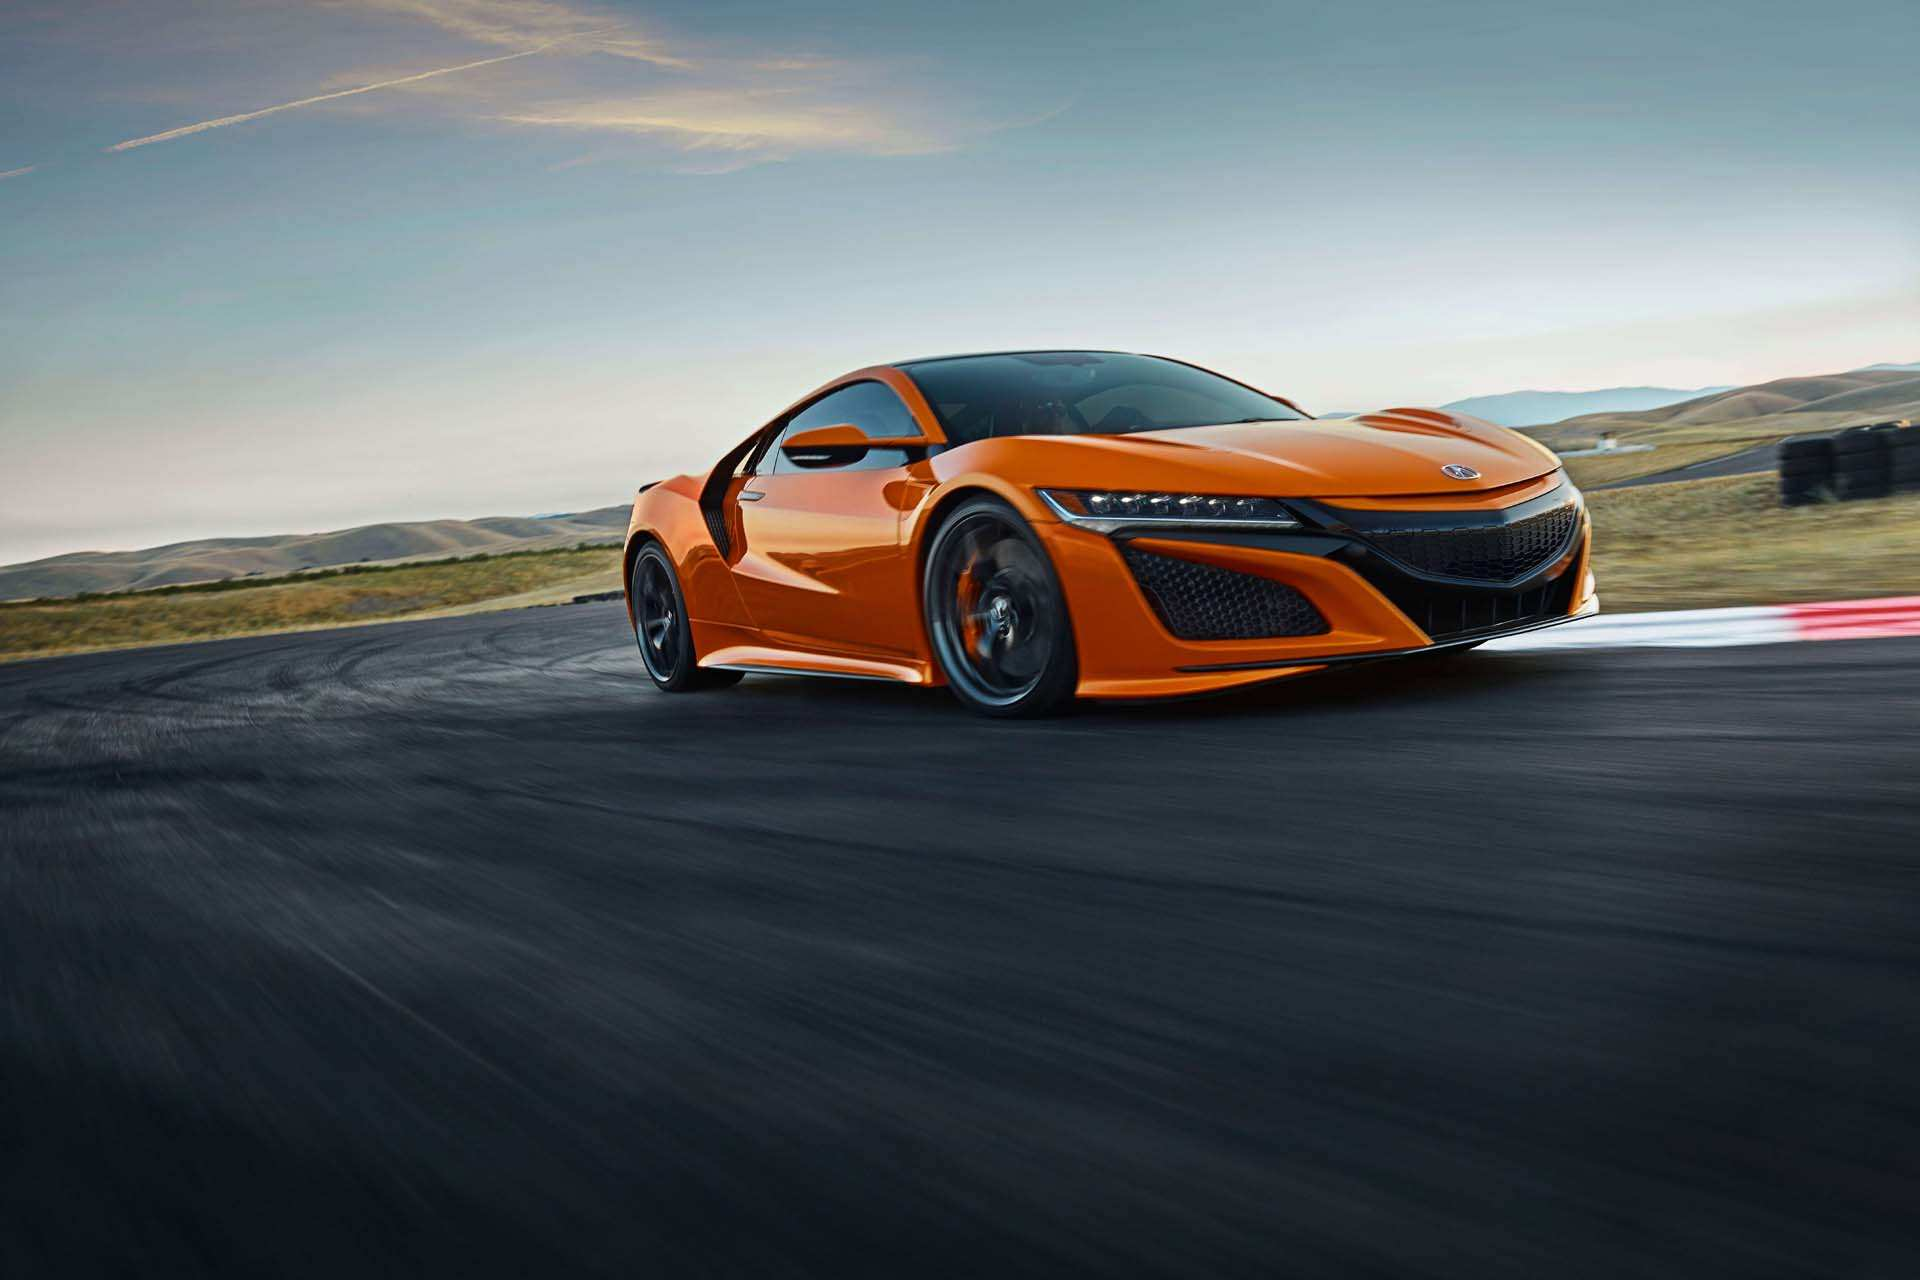 69 Concept of Acura Nsx 2020 Overview with Acura Nsx 2020